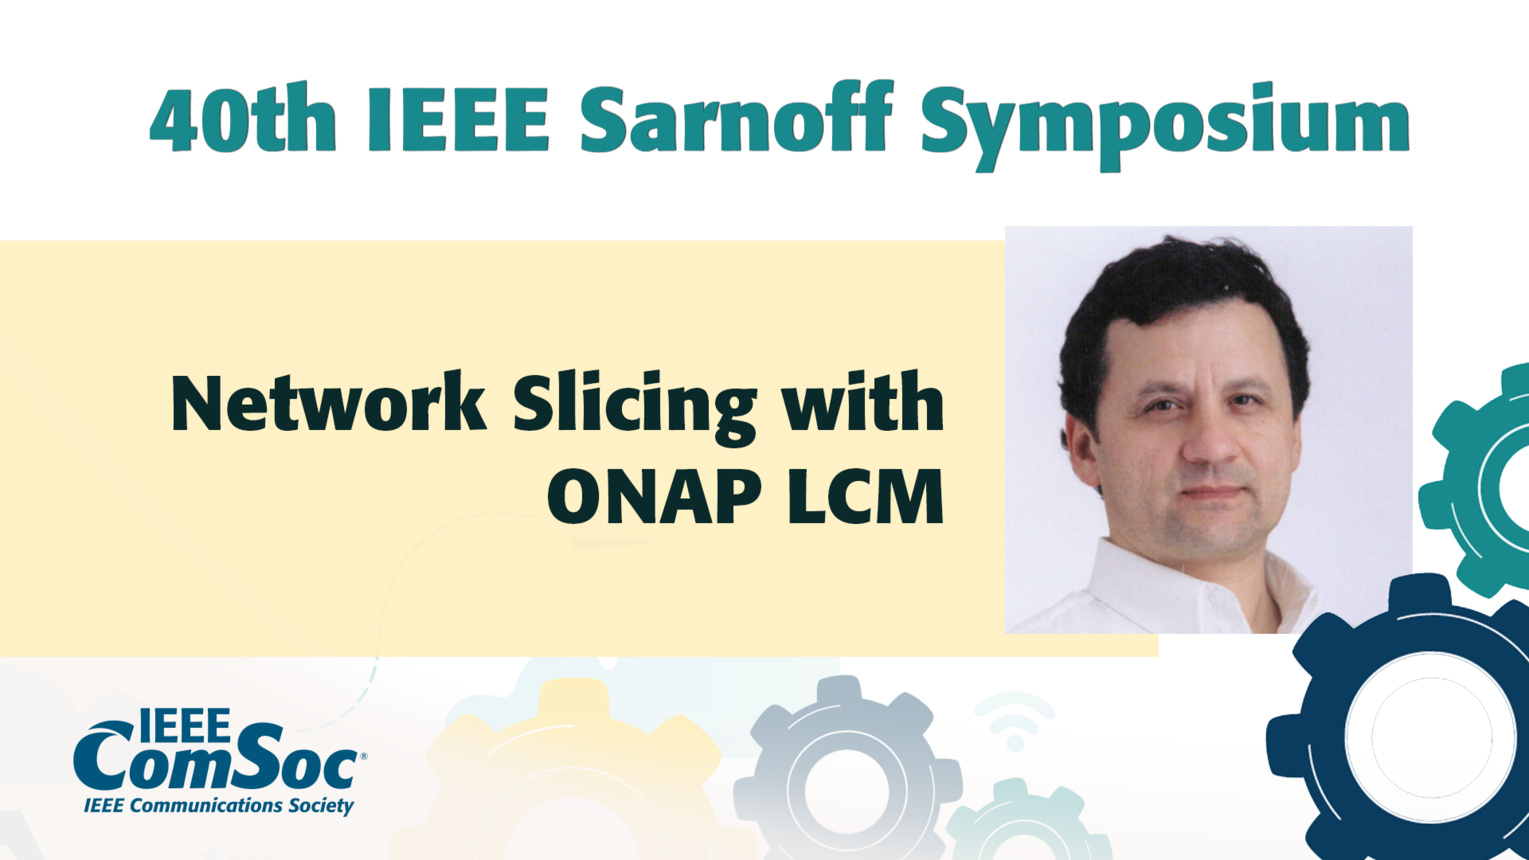 Network Slicing with ONAP LCM - Cagatay Buyukkoc - IEEE Sarnoff Symposium, 2019